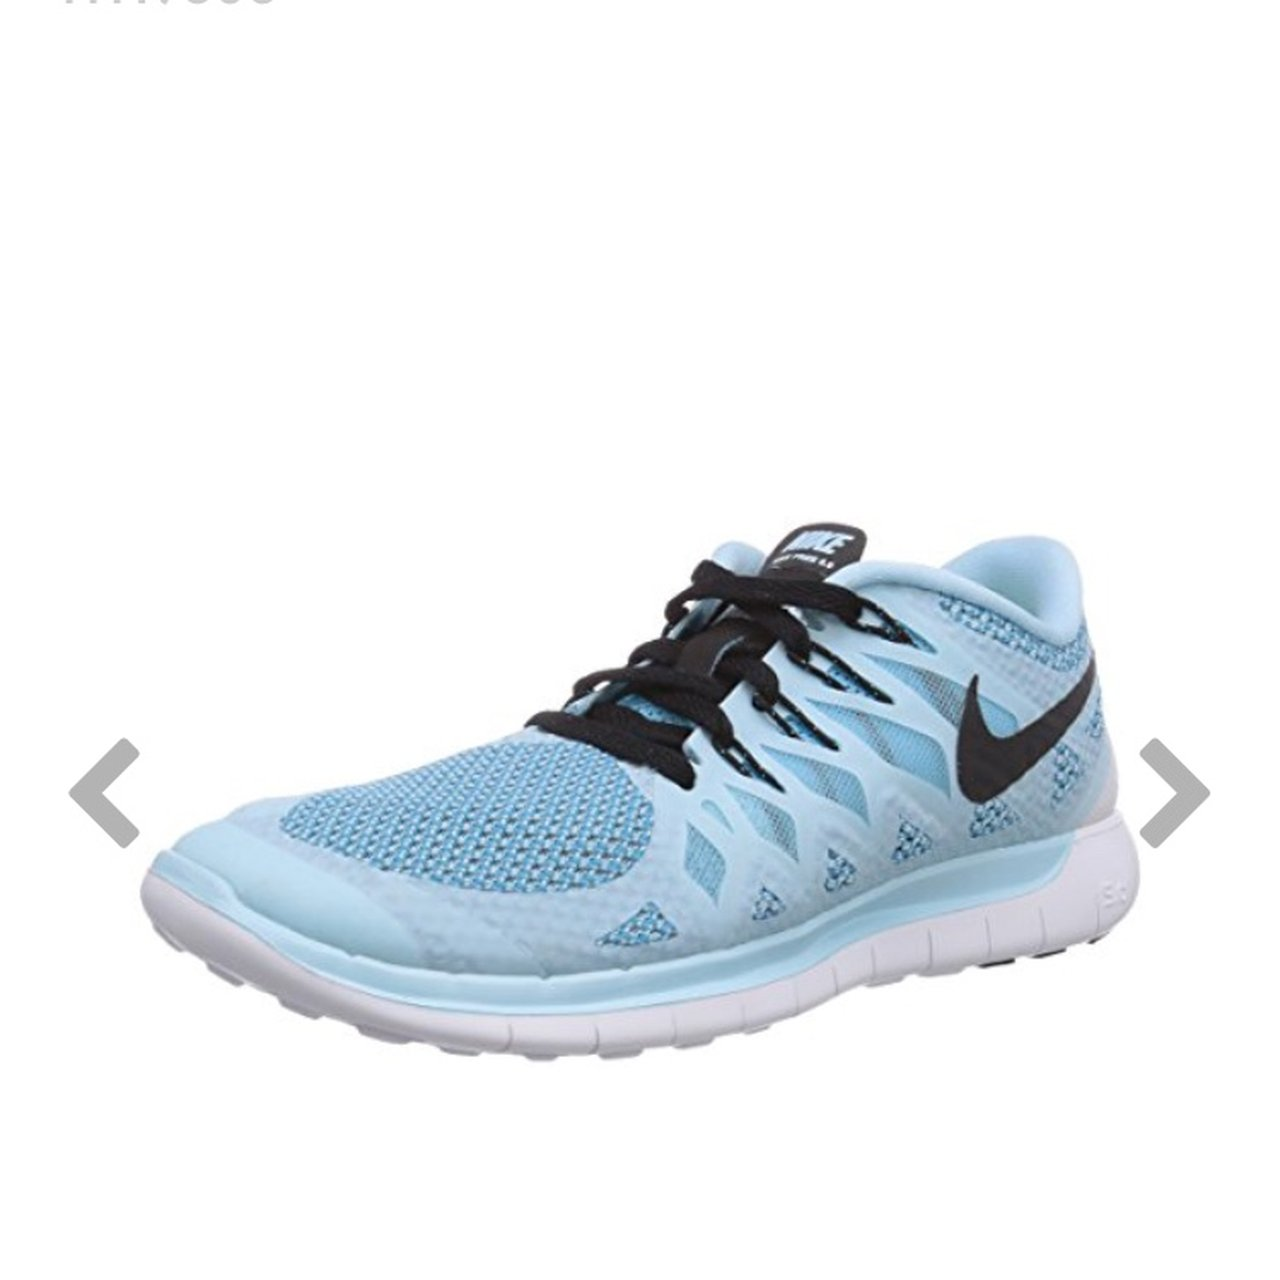 luogo comune non fare mille dollari  Nike free 5.0 light blue runners. Worn a good bit... - Depop